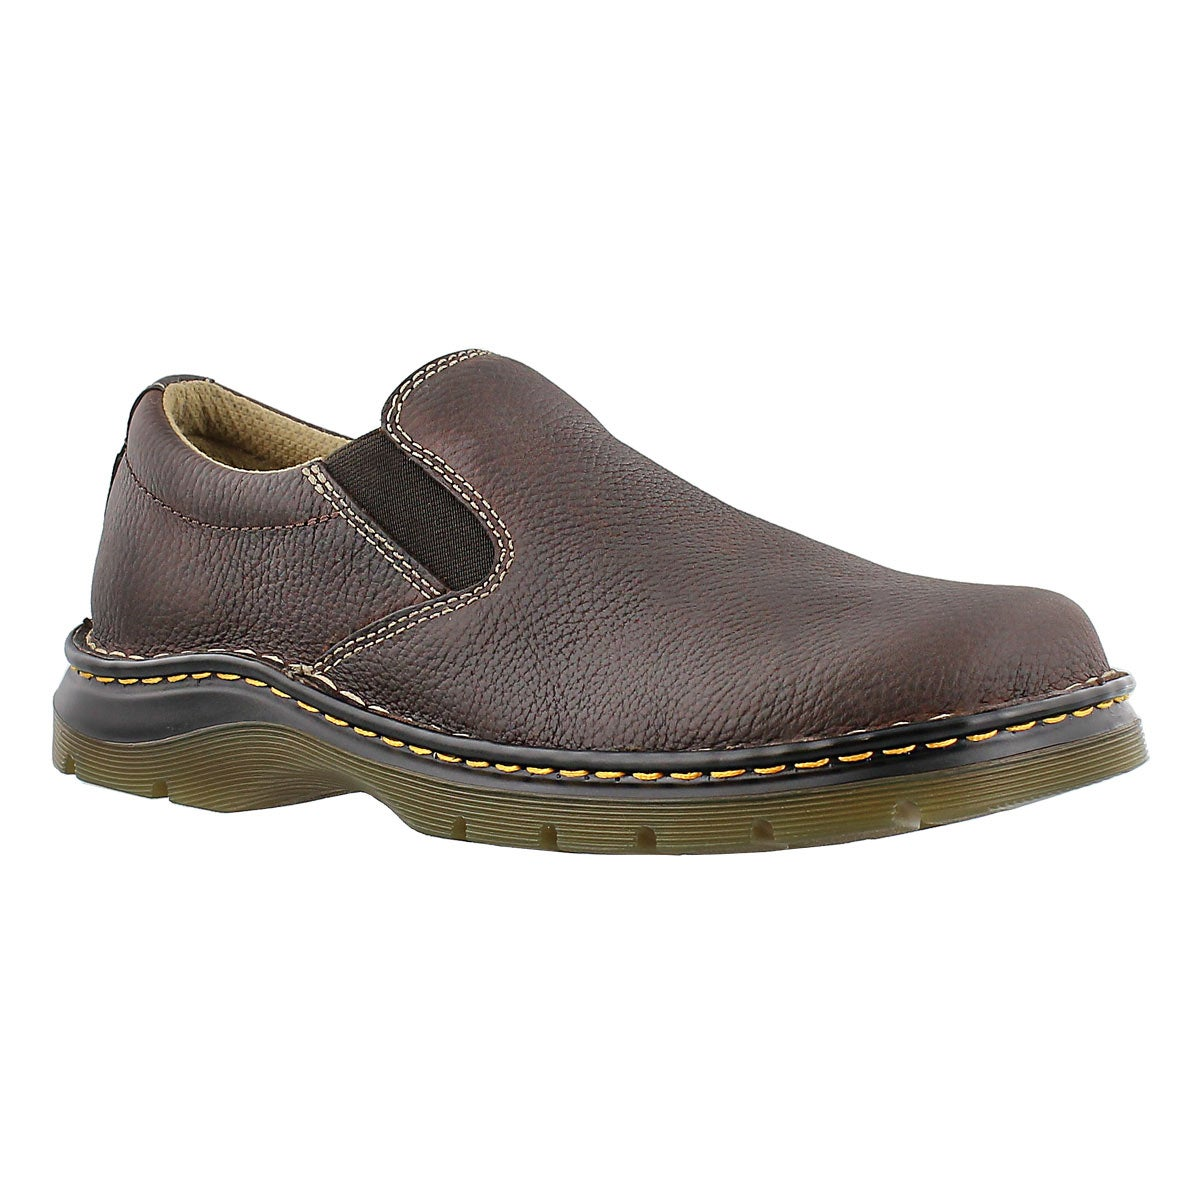 Mns Bryce brown slip on casual shoe